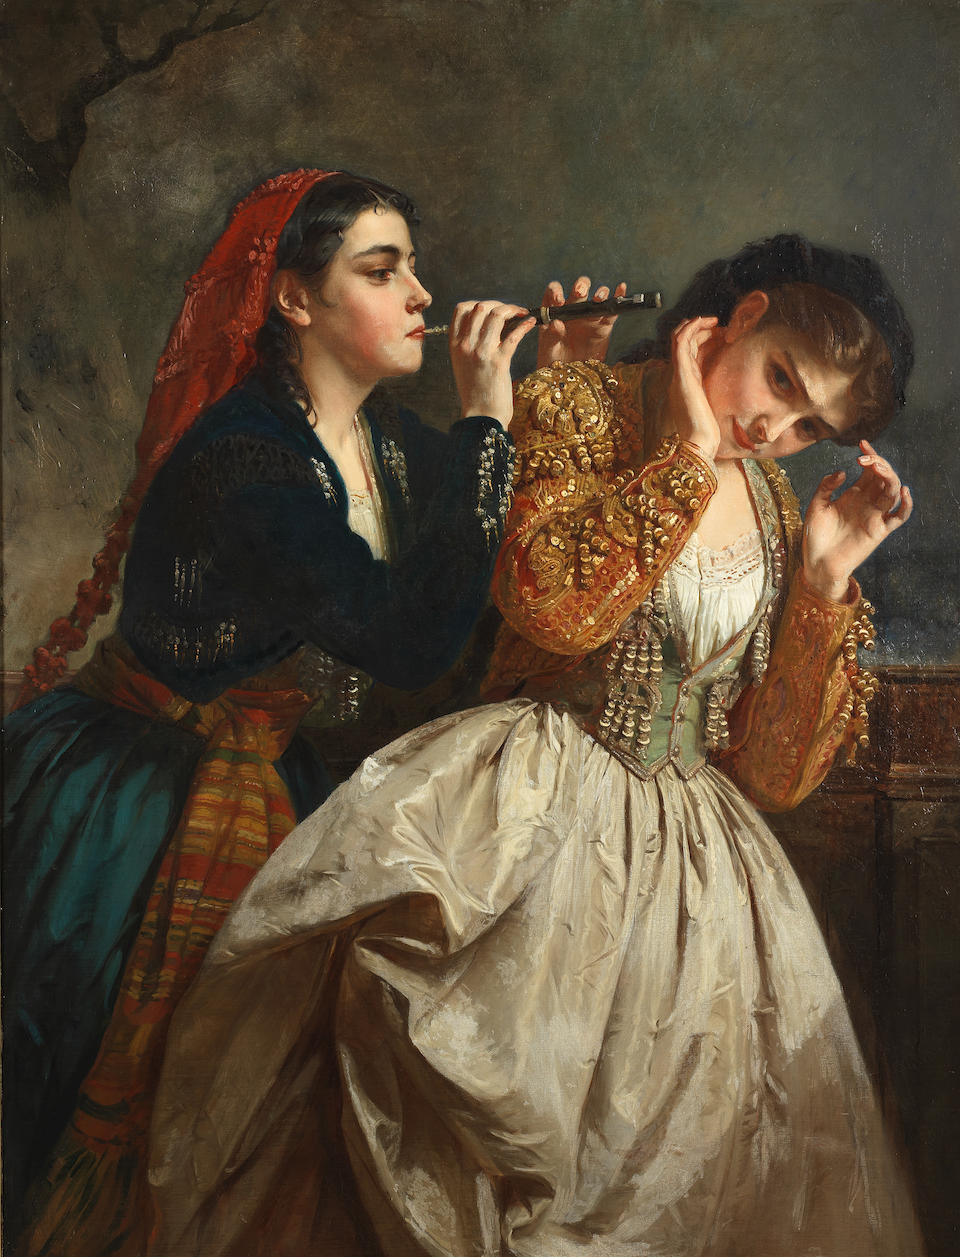 Henri Guillaume Schlesinger (French, 1814-1893) The Five Senses